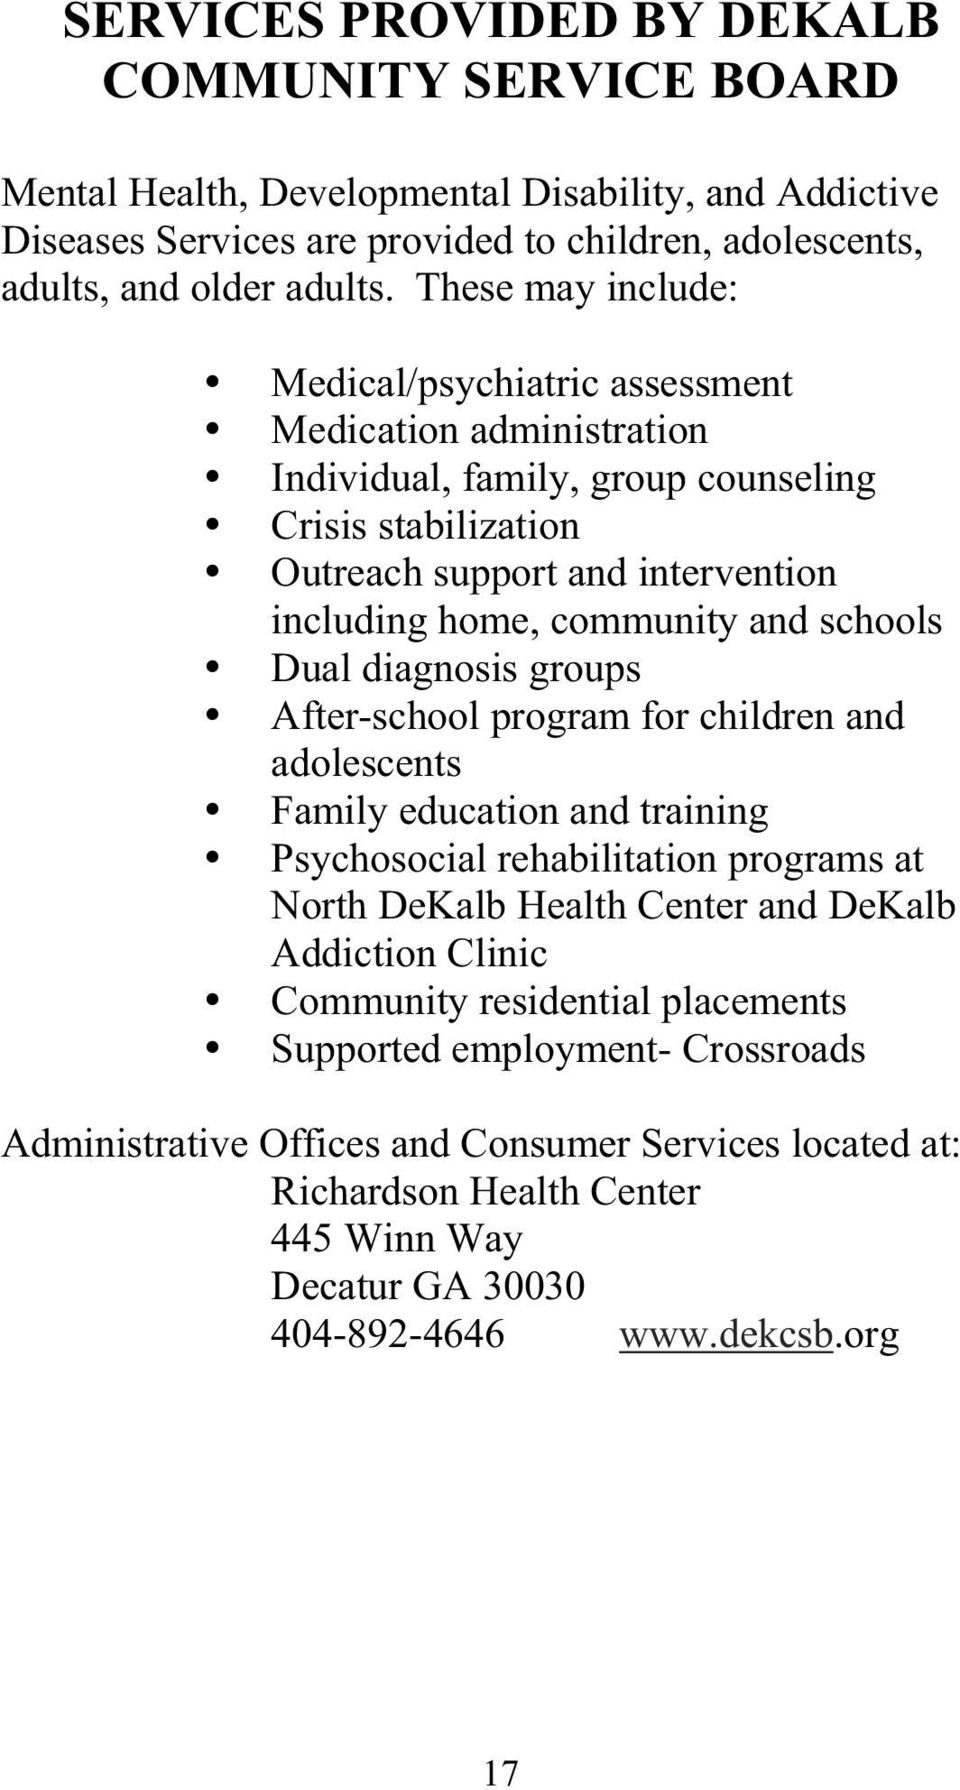 schools Dual diagnosis groups After-school program for children and adolescents Family education and training Psychosocial rehabilitation programs at North DeKalb Health Center and DeKalb Addiction